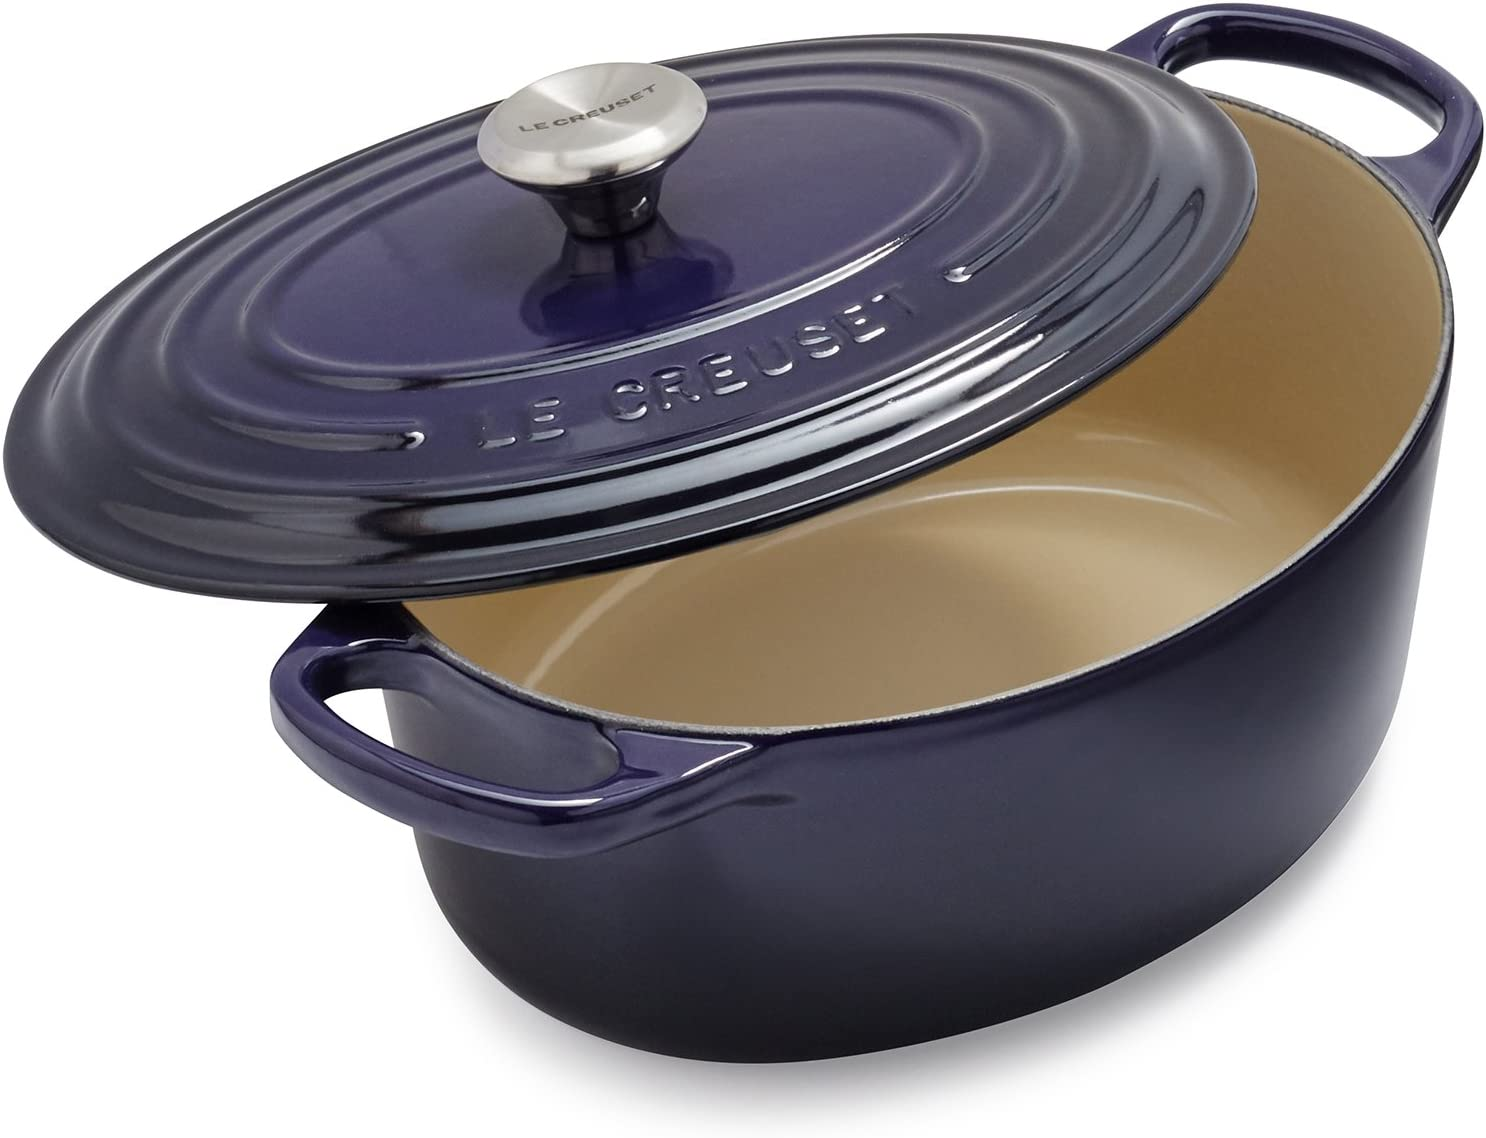 Le Creuset Signature Oval French Oven LS2502-256J, 3.5 qt, Flame